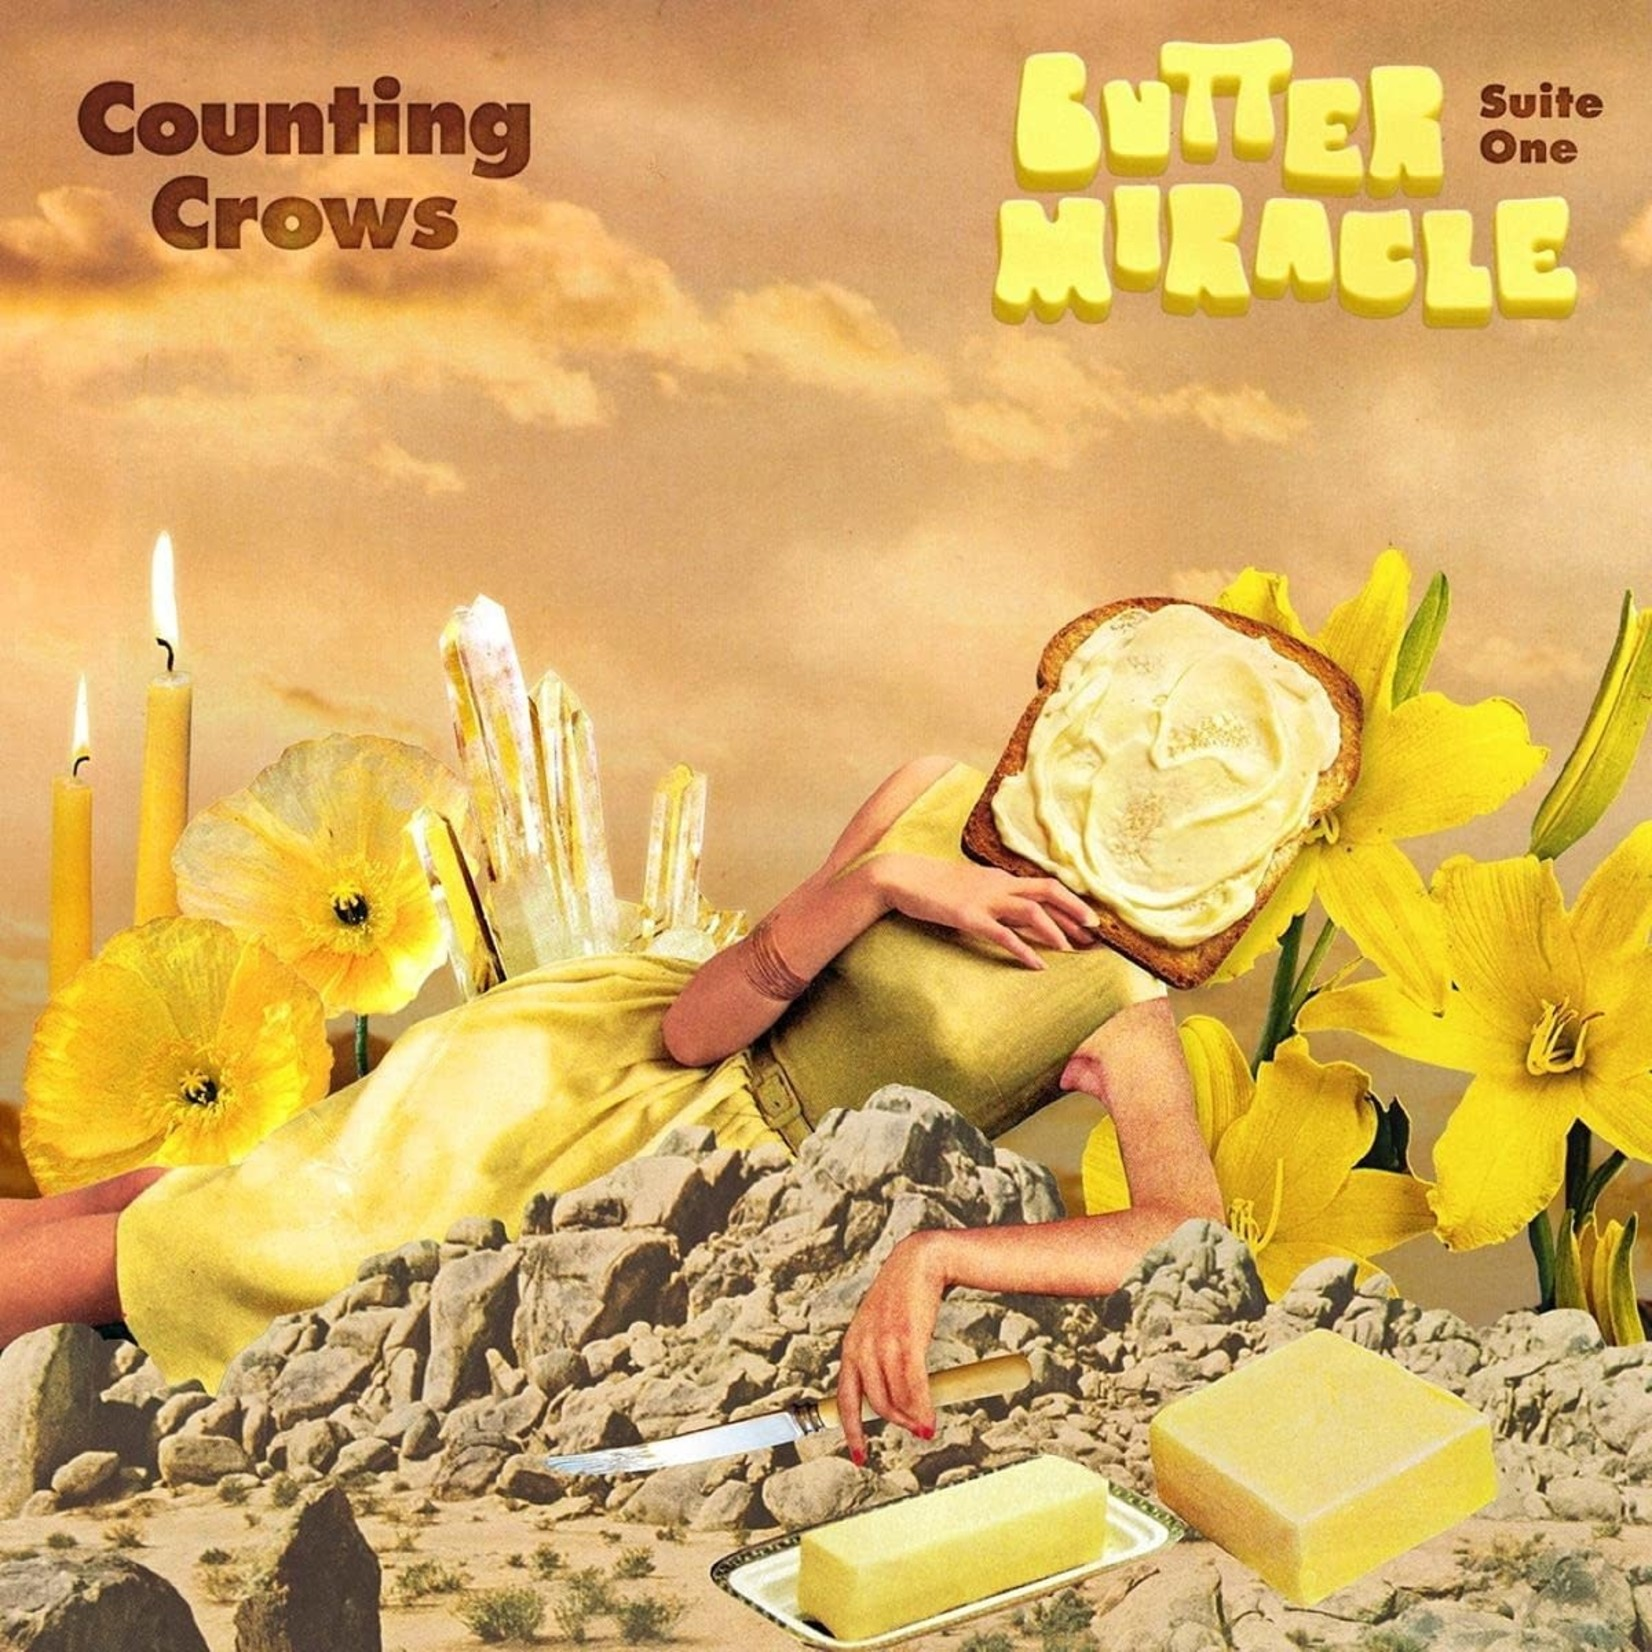 COUNTING CROWS BUTTER MIRACLE SUITE ONE (LP)